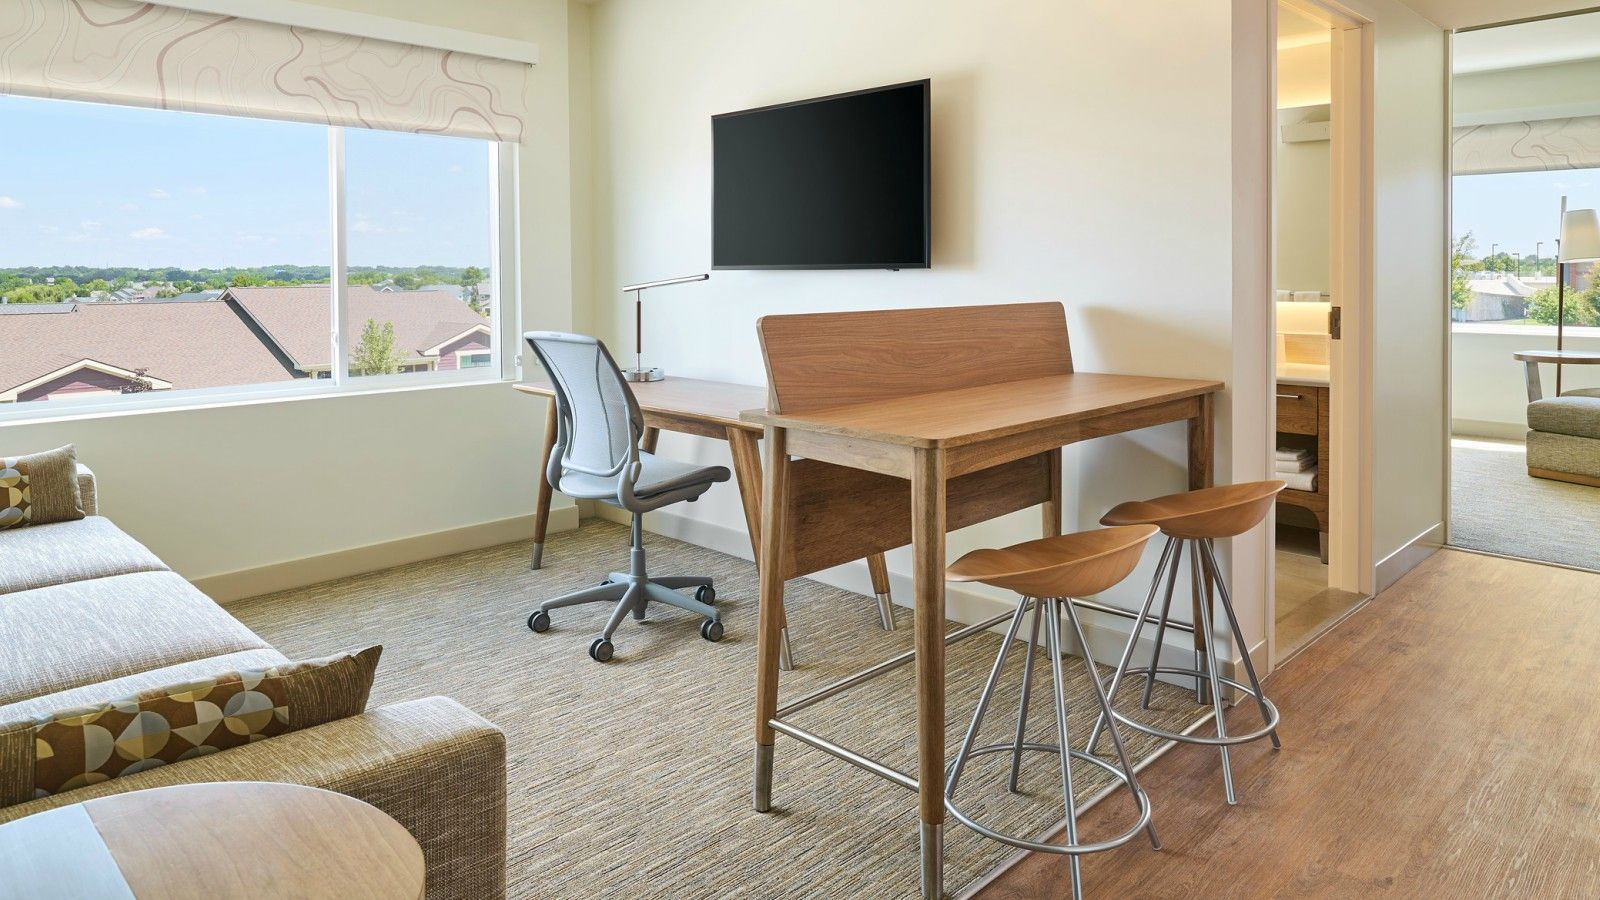 Des Moines Accommodations - Executive